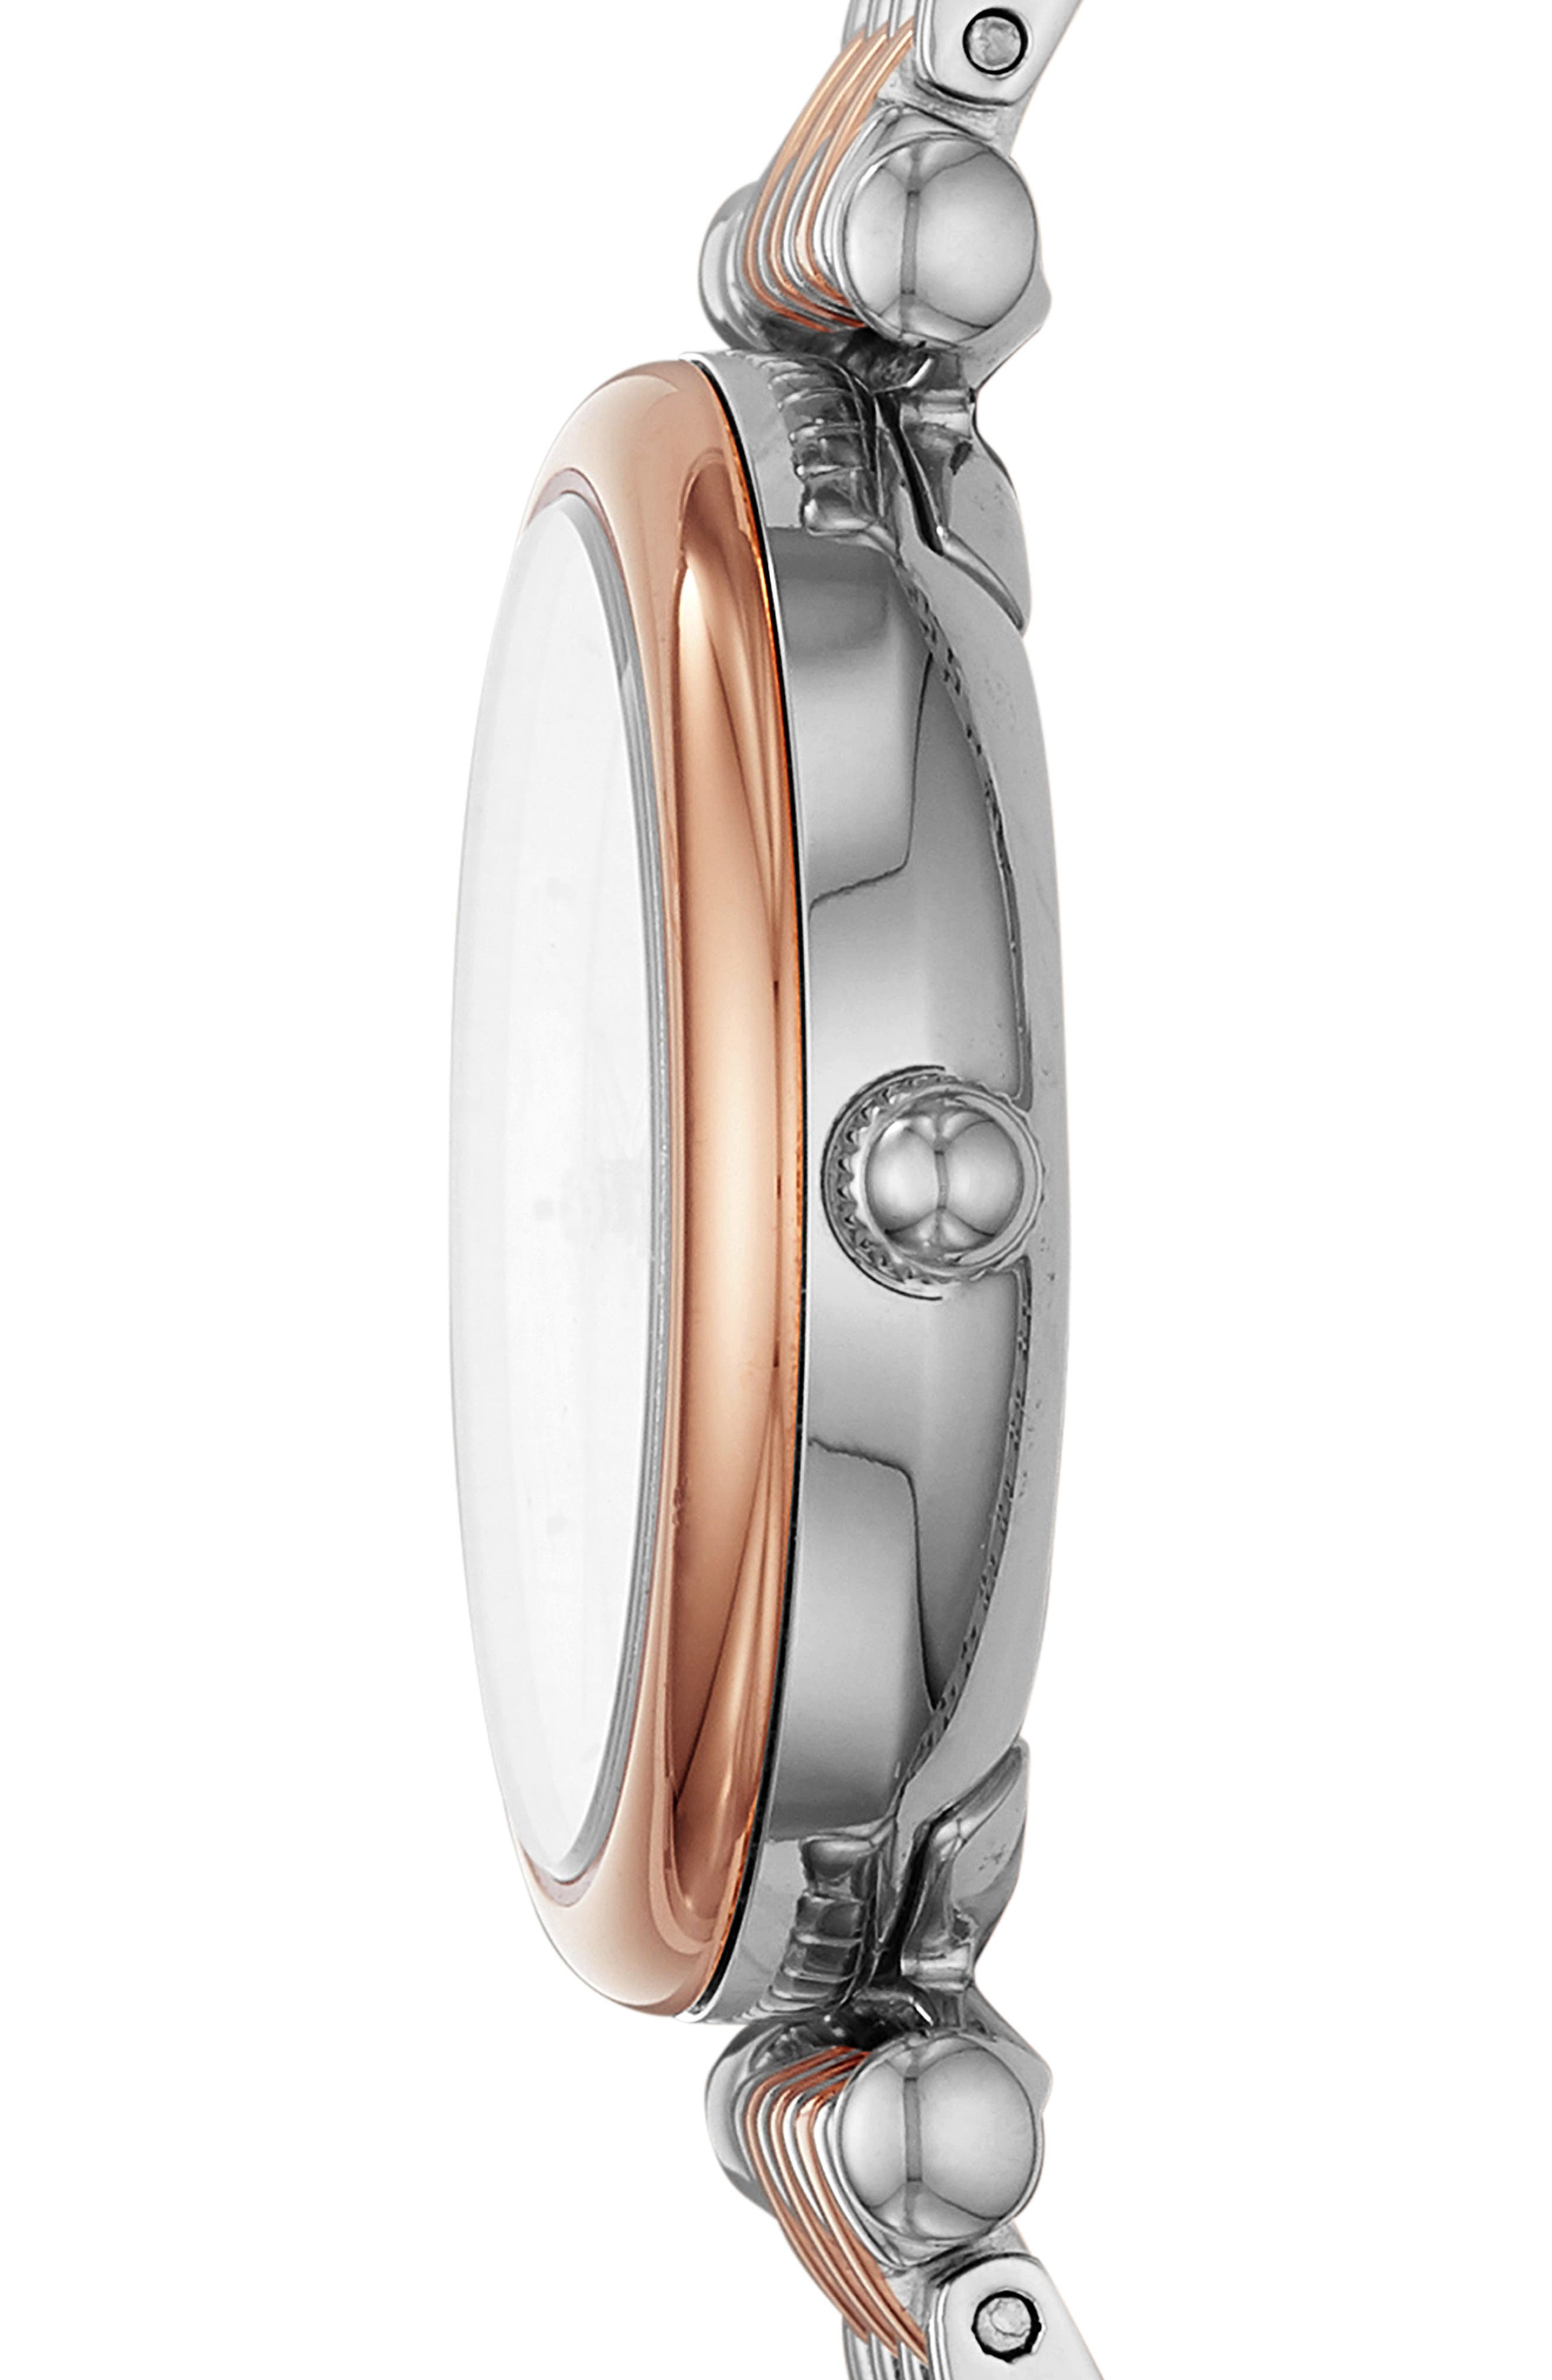 FOSSIL, Mini Carlie Bracelet Watch, 29mm, Alternate thumbnail 2, color, ROSE GOLD/MOTHER PEARL/SILVER